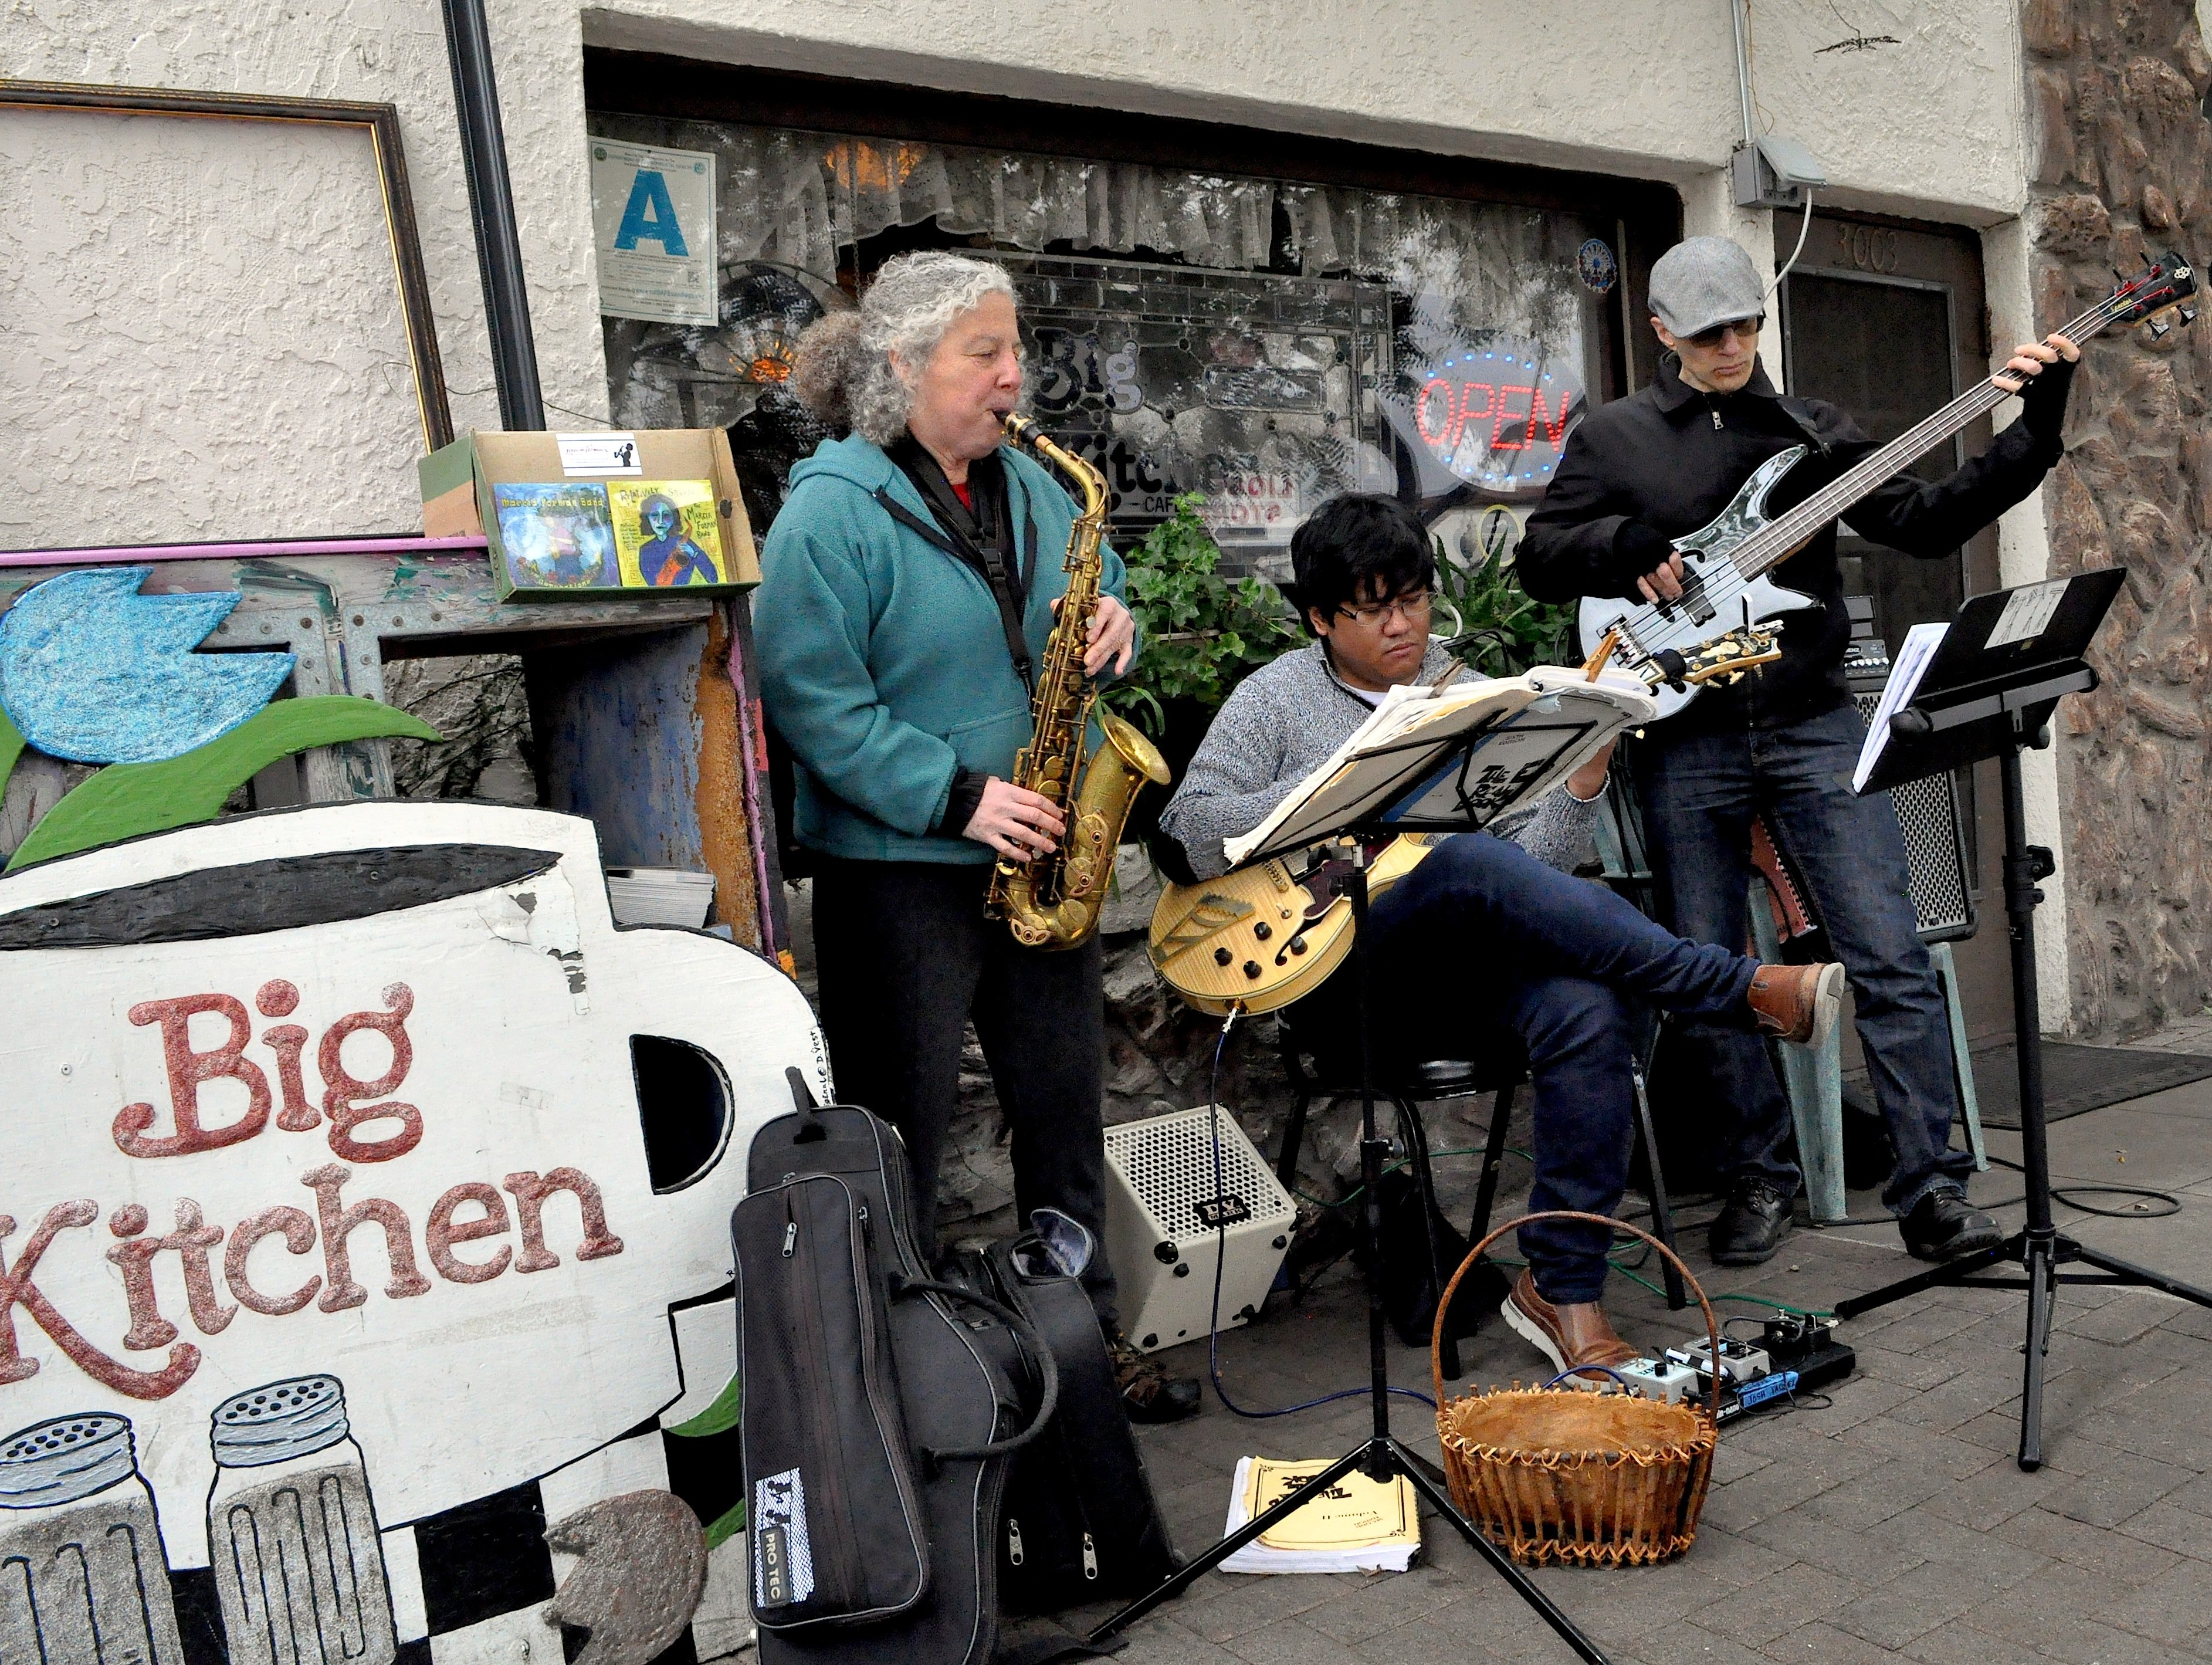 Marcia Foreman Band outside The Big Kitchen, South Park ...